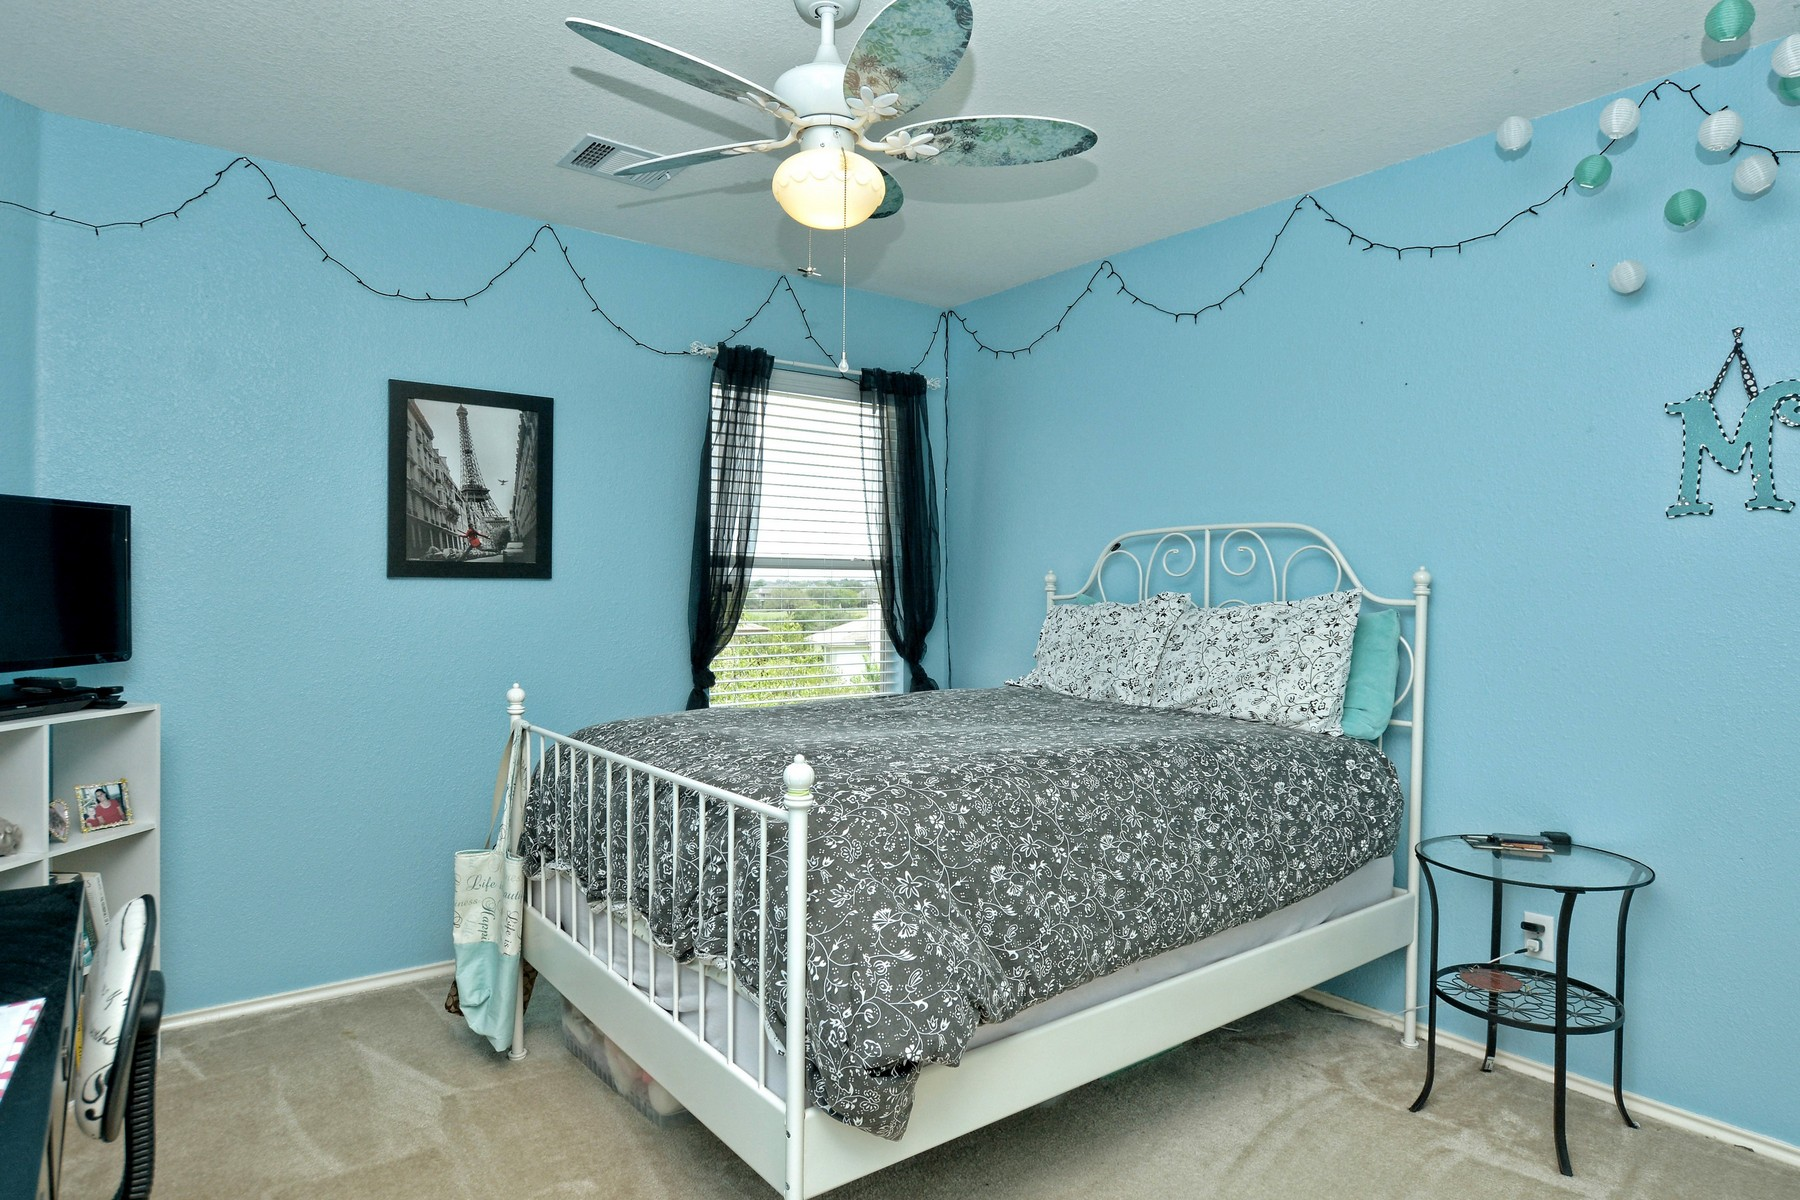 Additional photo for property listing at Great Location in Avery Ranch 14813 La Llorona Ln Austin, Texas 78717 Estados Unidos